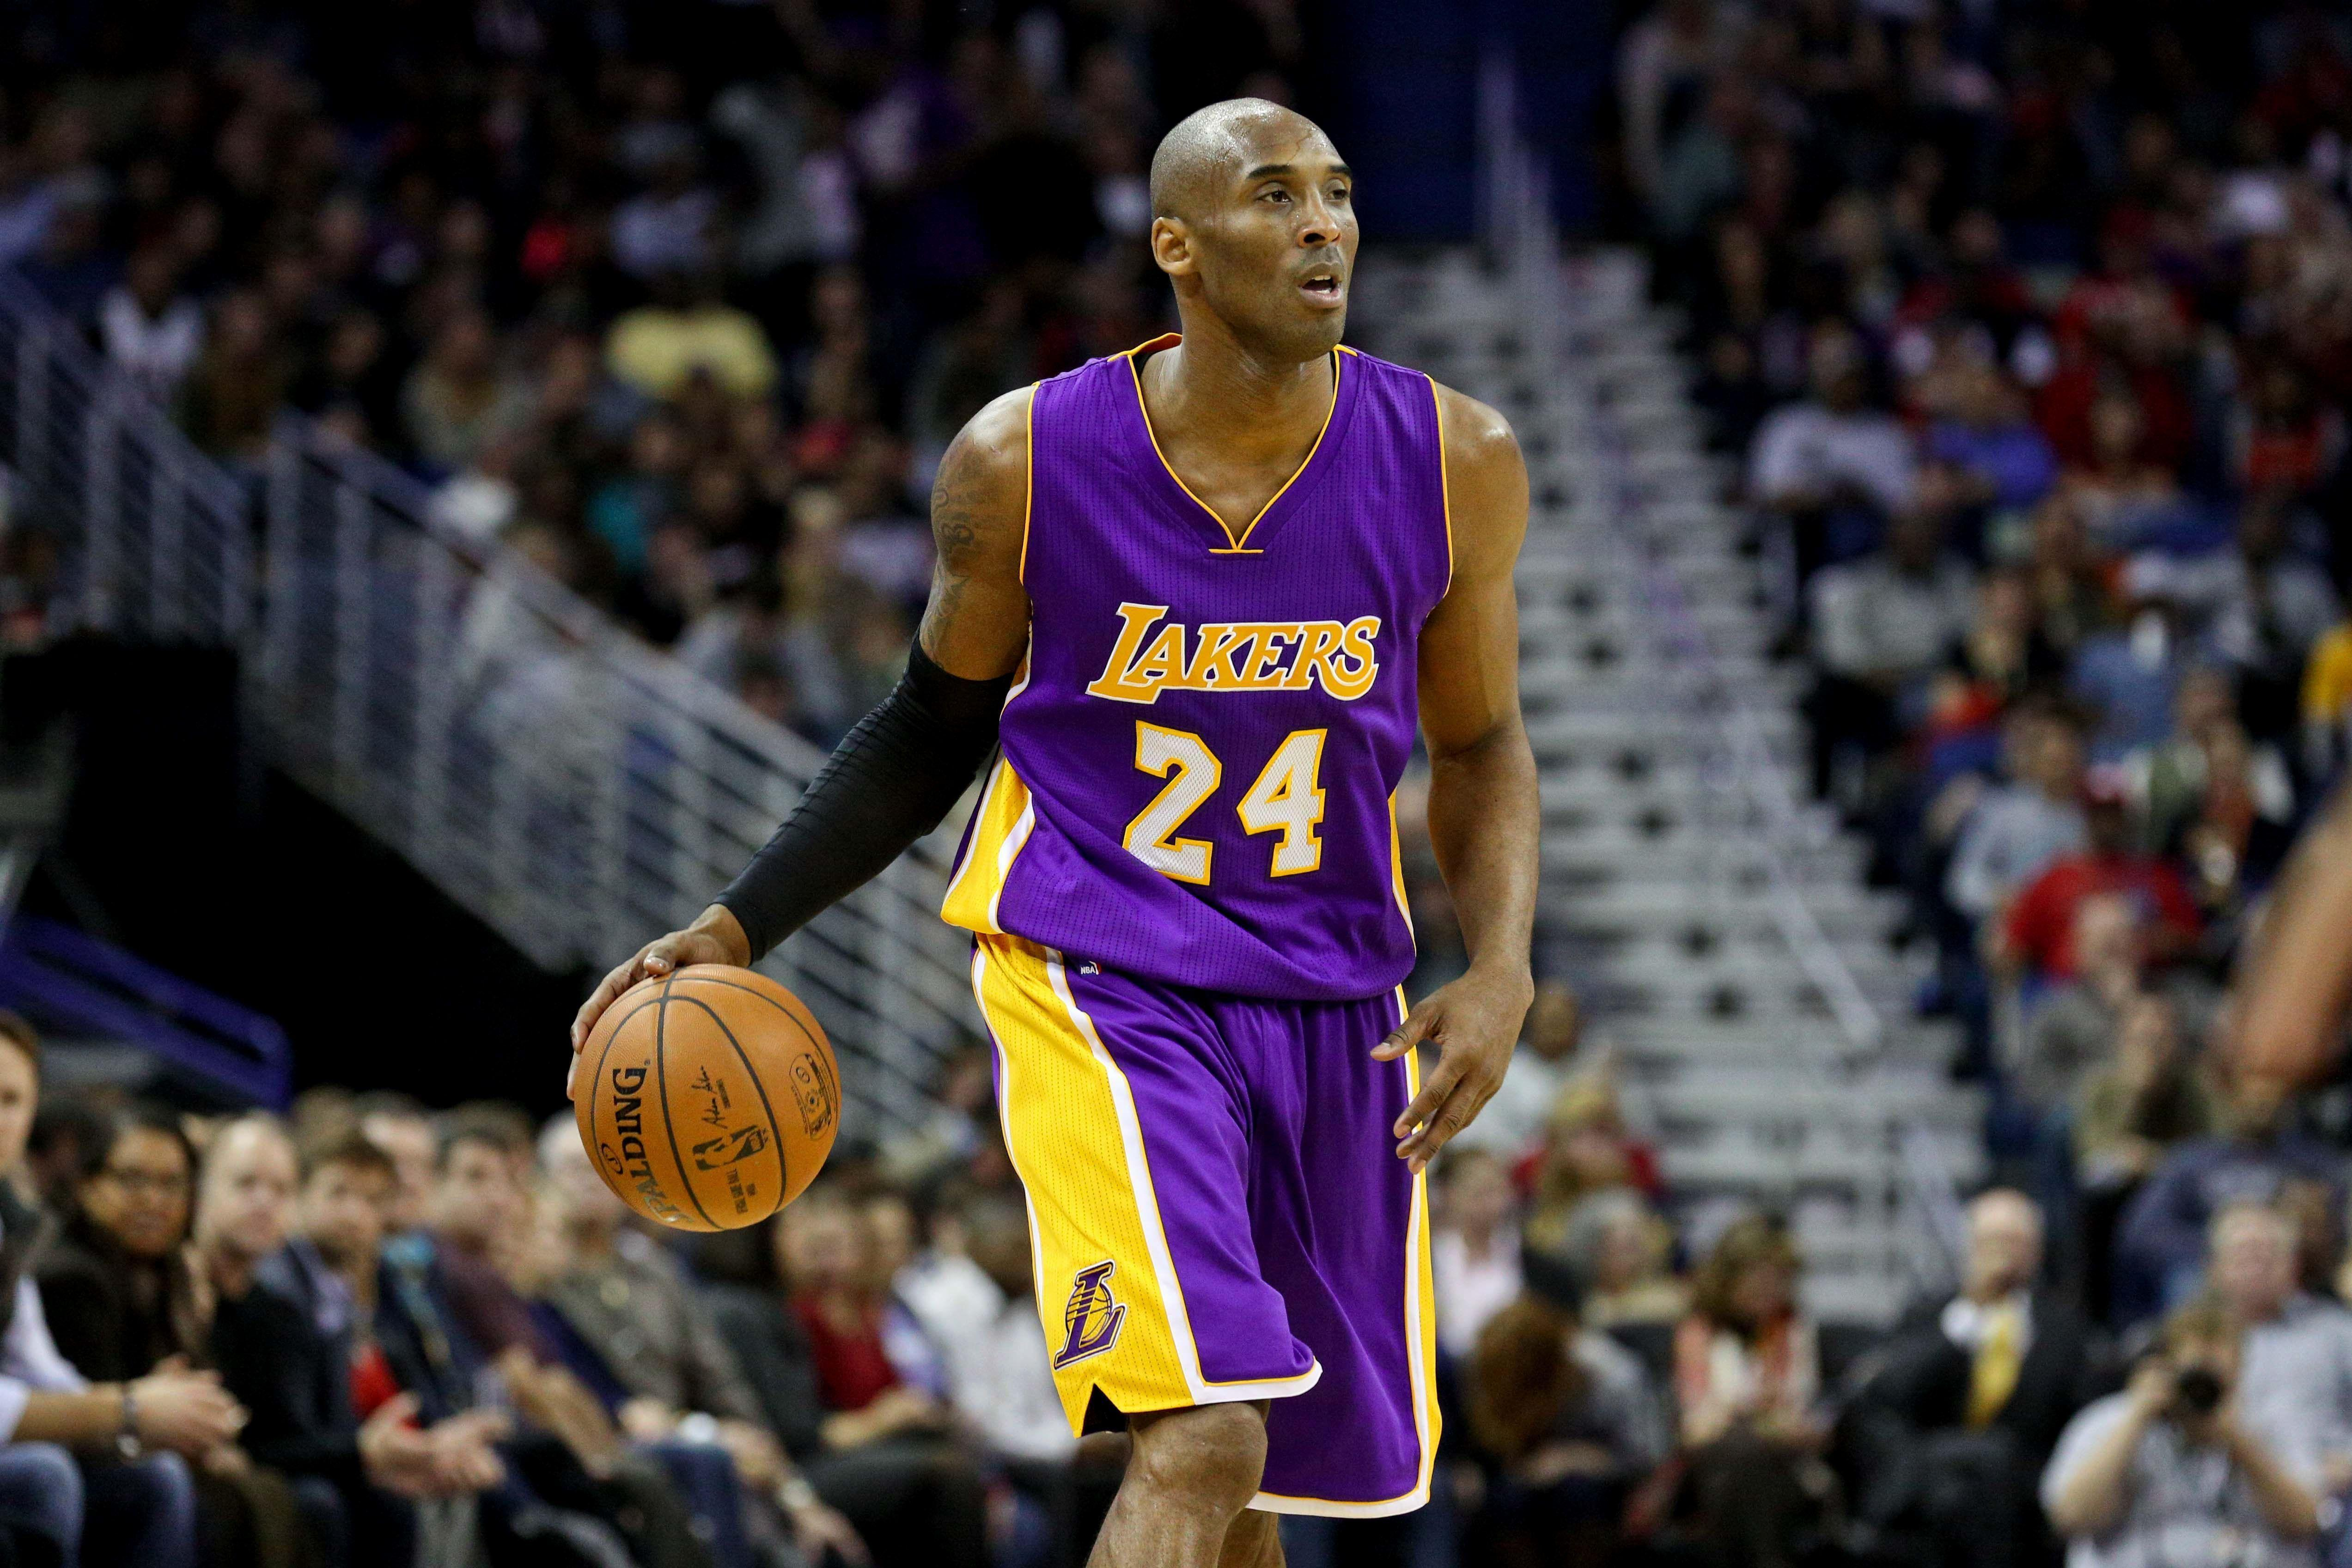 Is It Time For Kobe To Hang It Up? :: KyleWilliams23